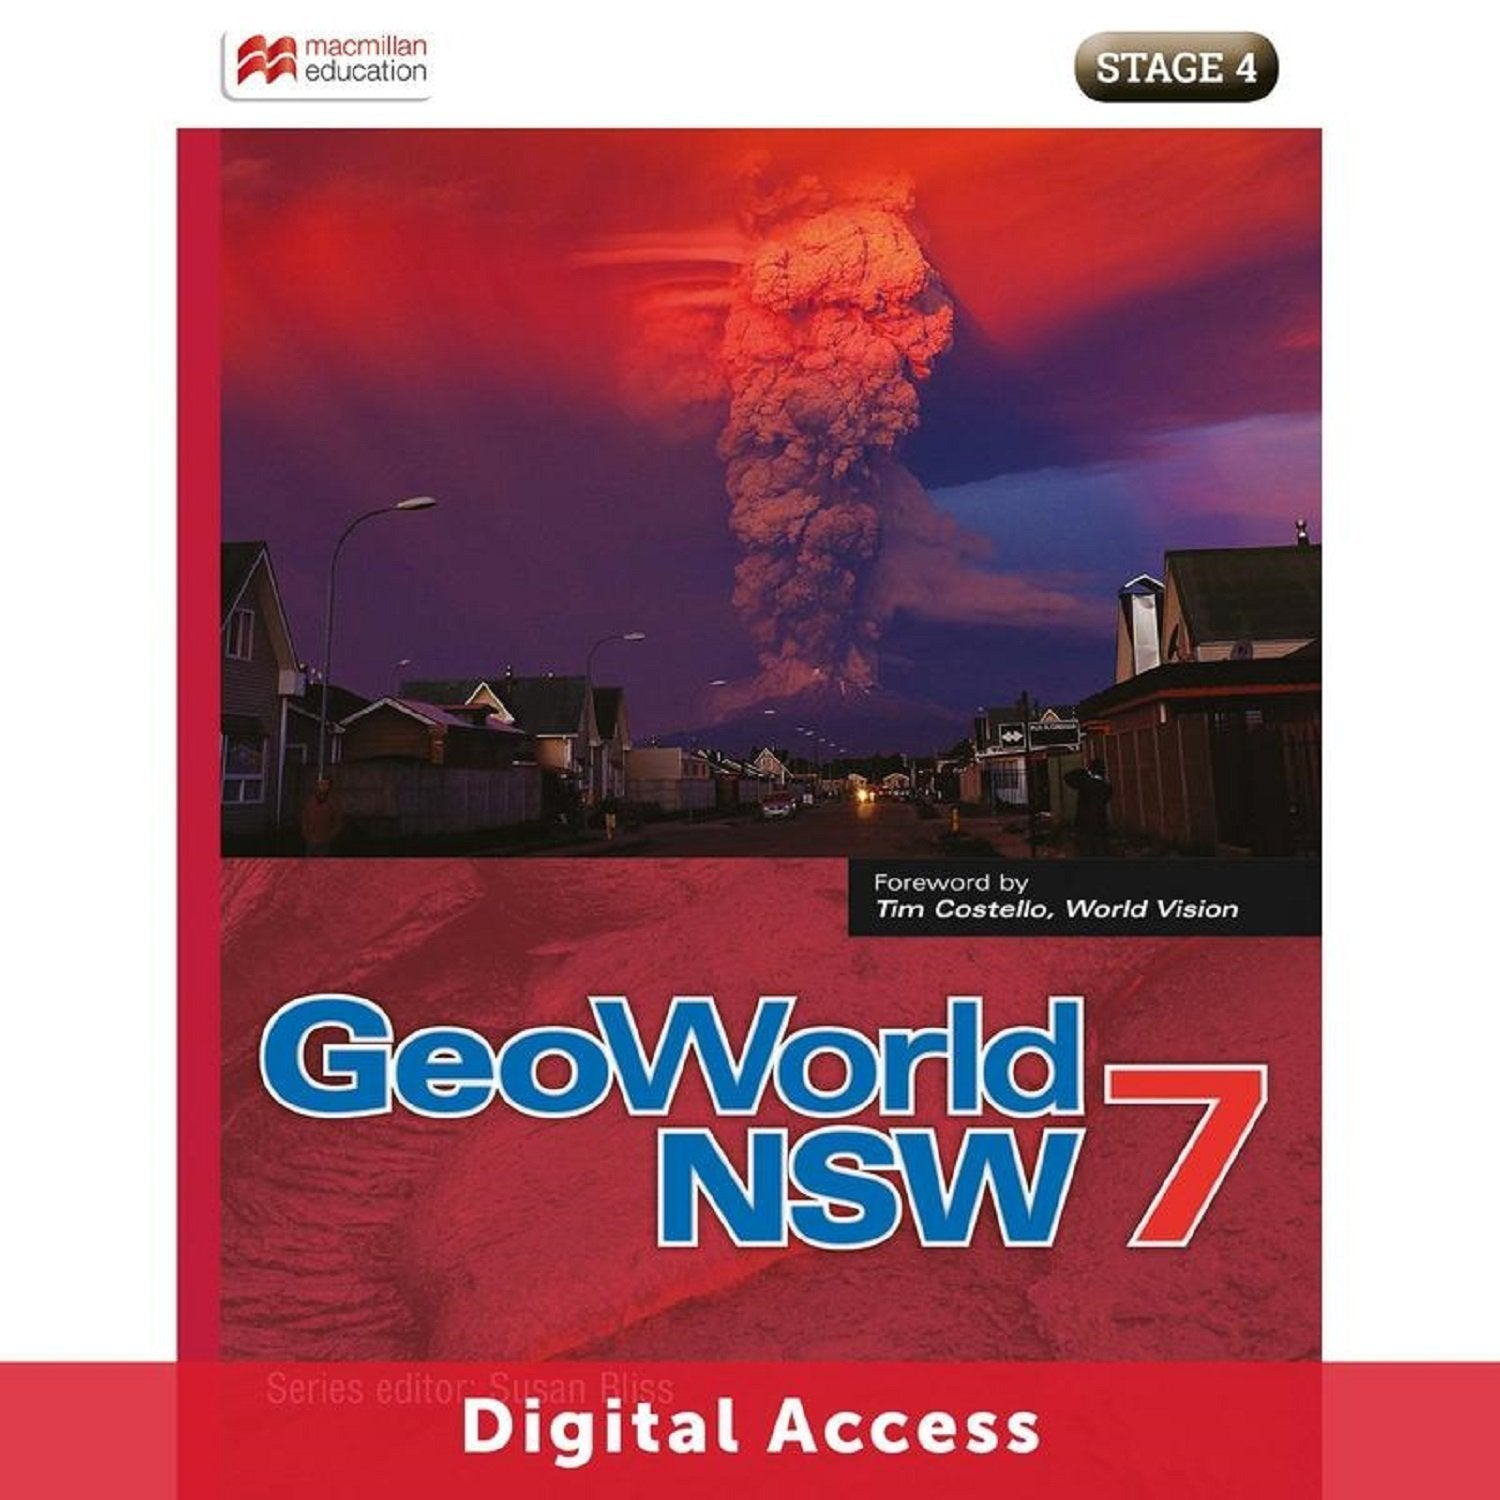 GeoWorld NSW 7 Student Digital access